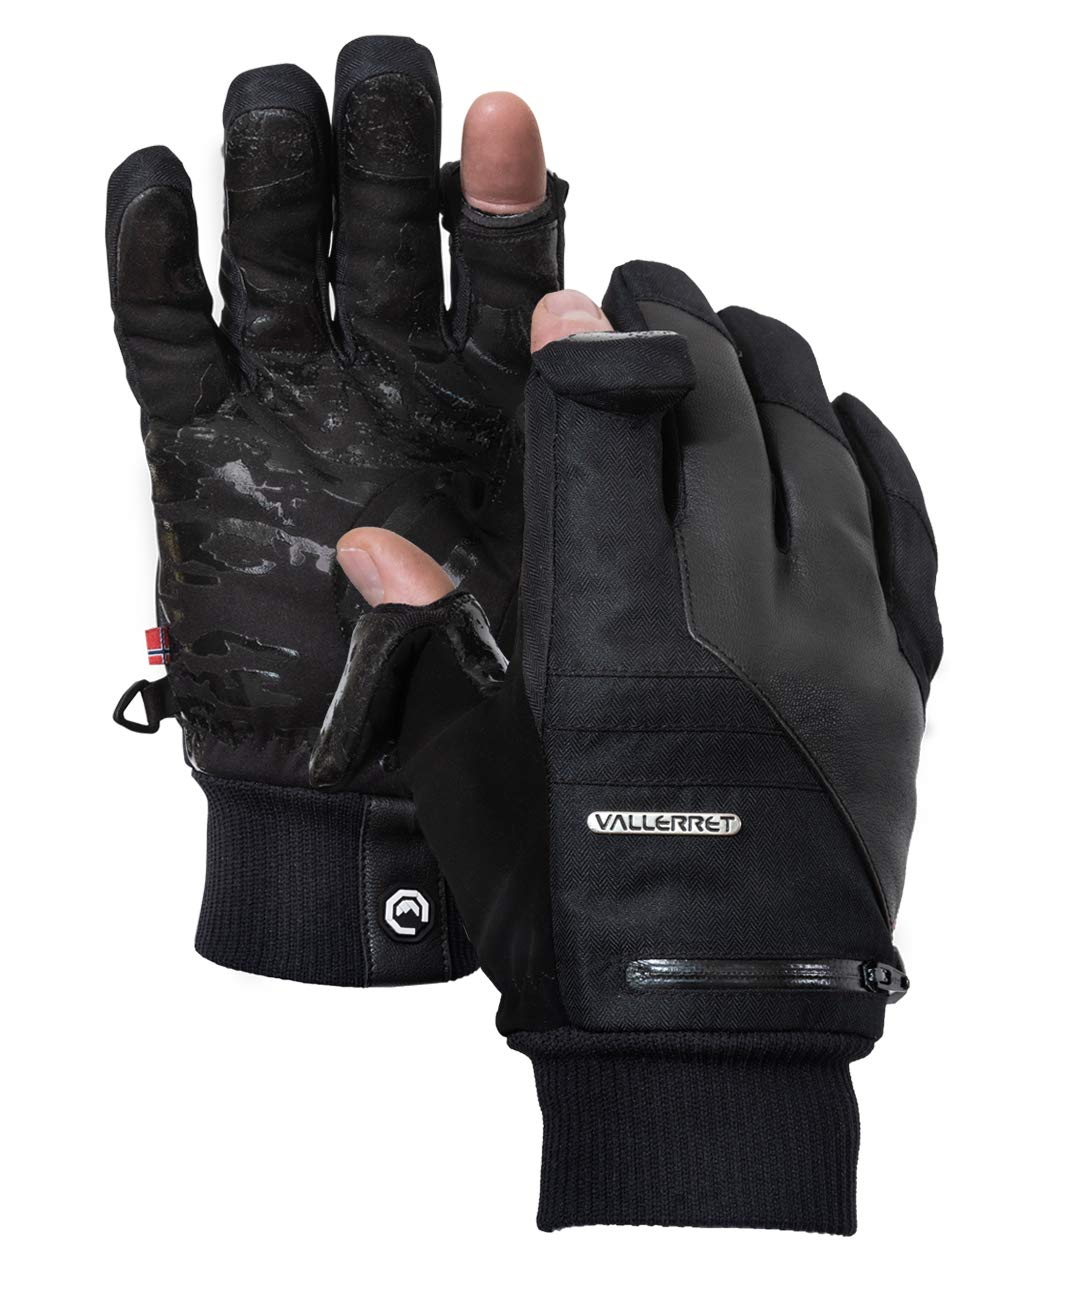 Vallerret Photography Gloves Markhof Pro Model 2.0 100/% merino wool liner with flip fingers and zip pocket magnets Black//Grey Designed for photographers to photograph during winter